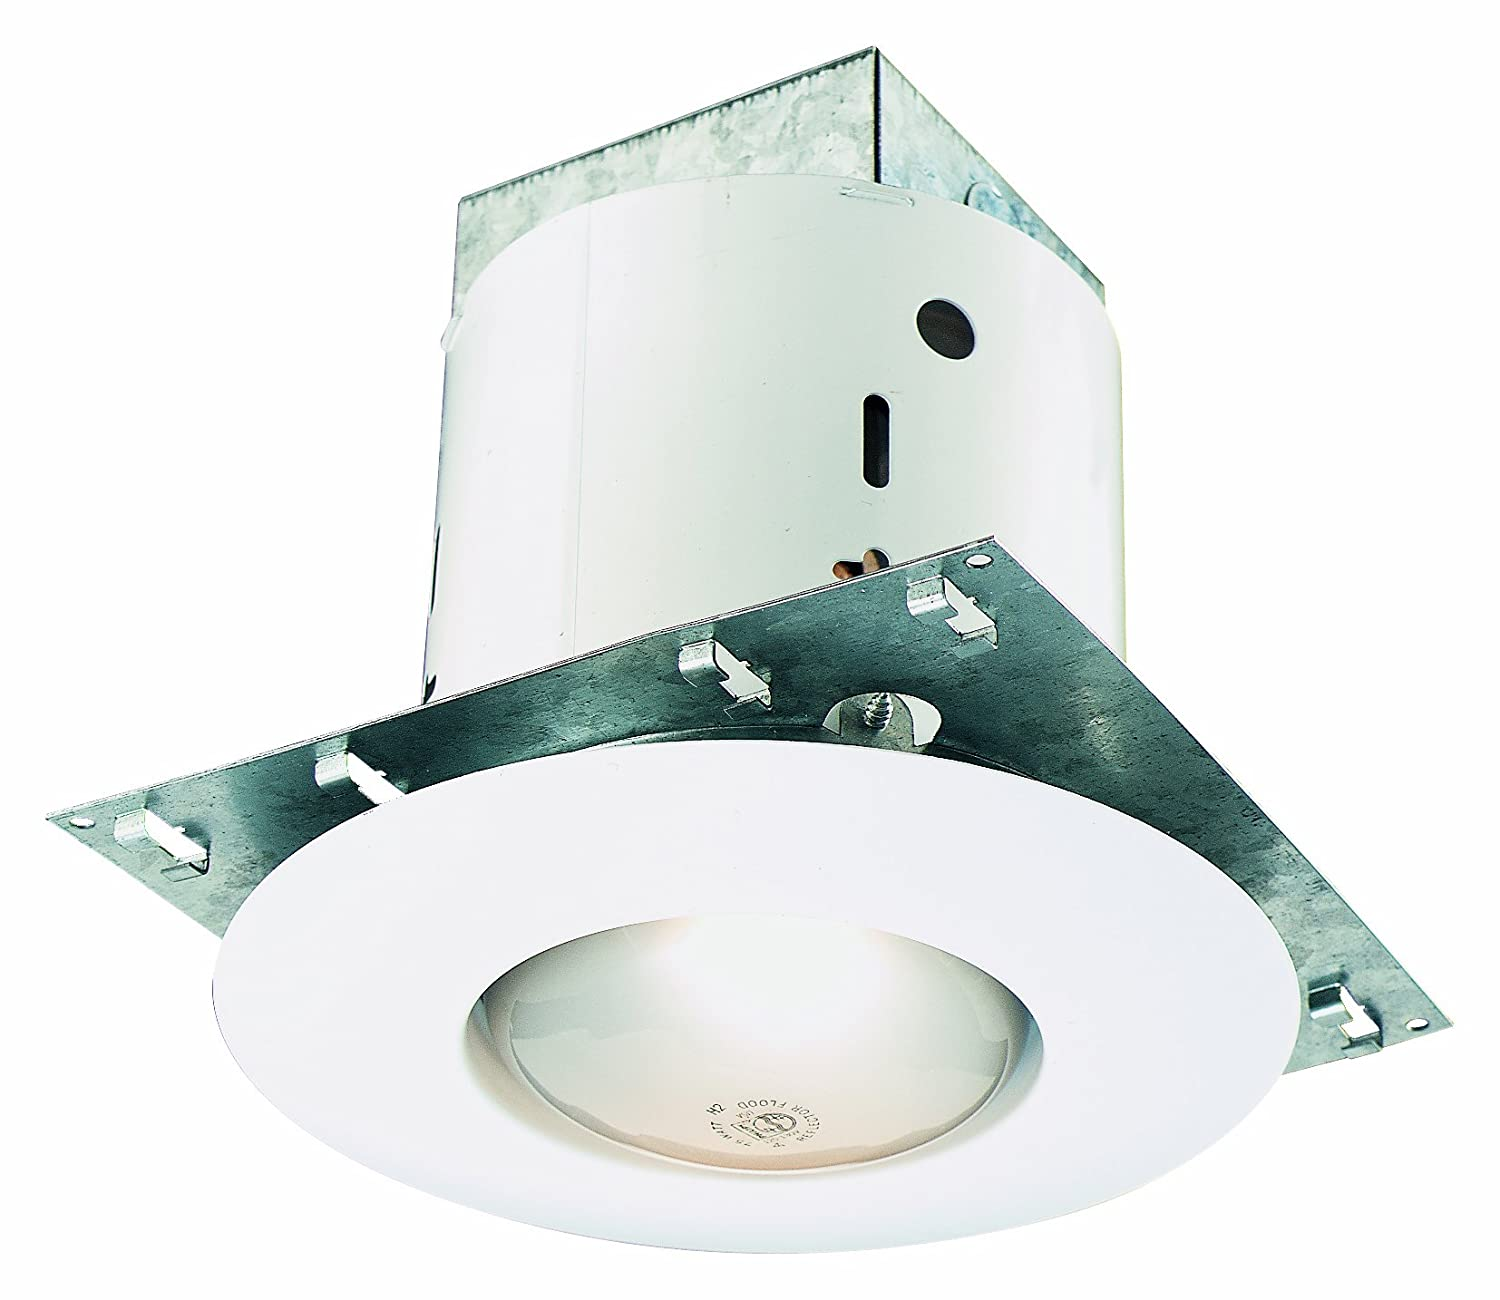 lowest price 0b47e 0b15b Thomas Lighting DY6408 Kit Recessed under under cabinet lighting and  accessories WHITE